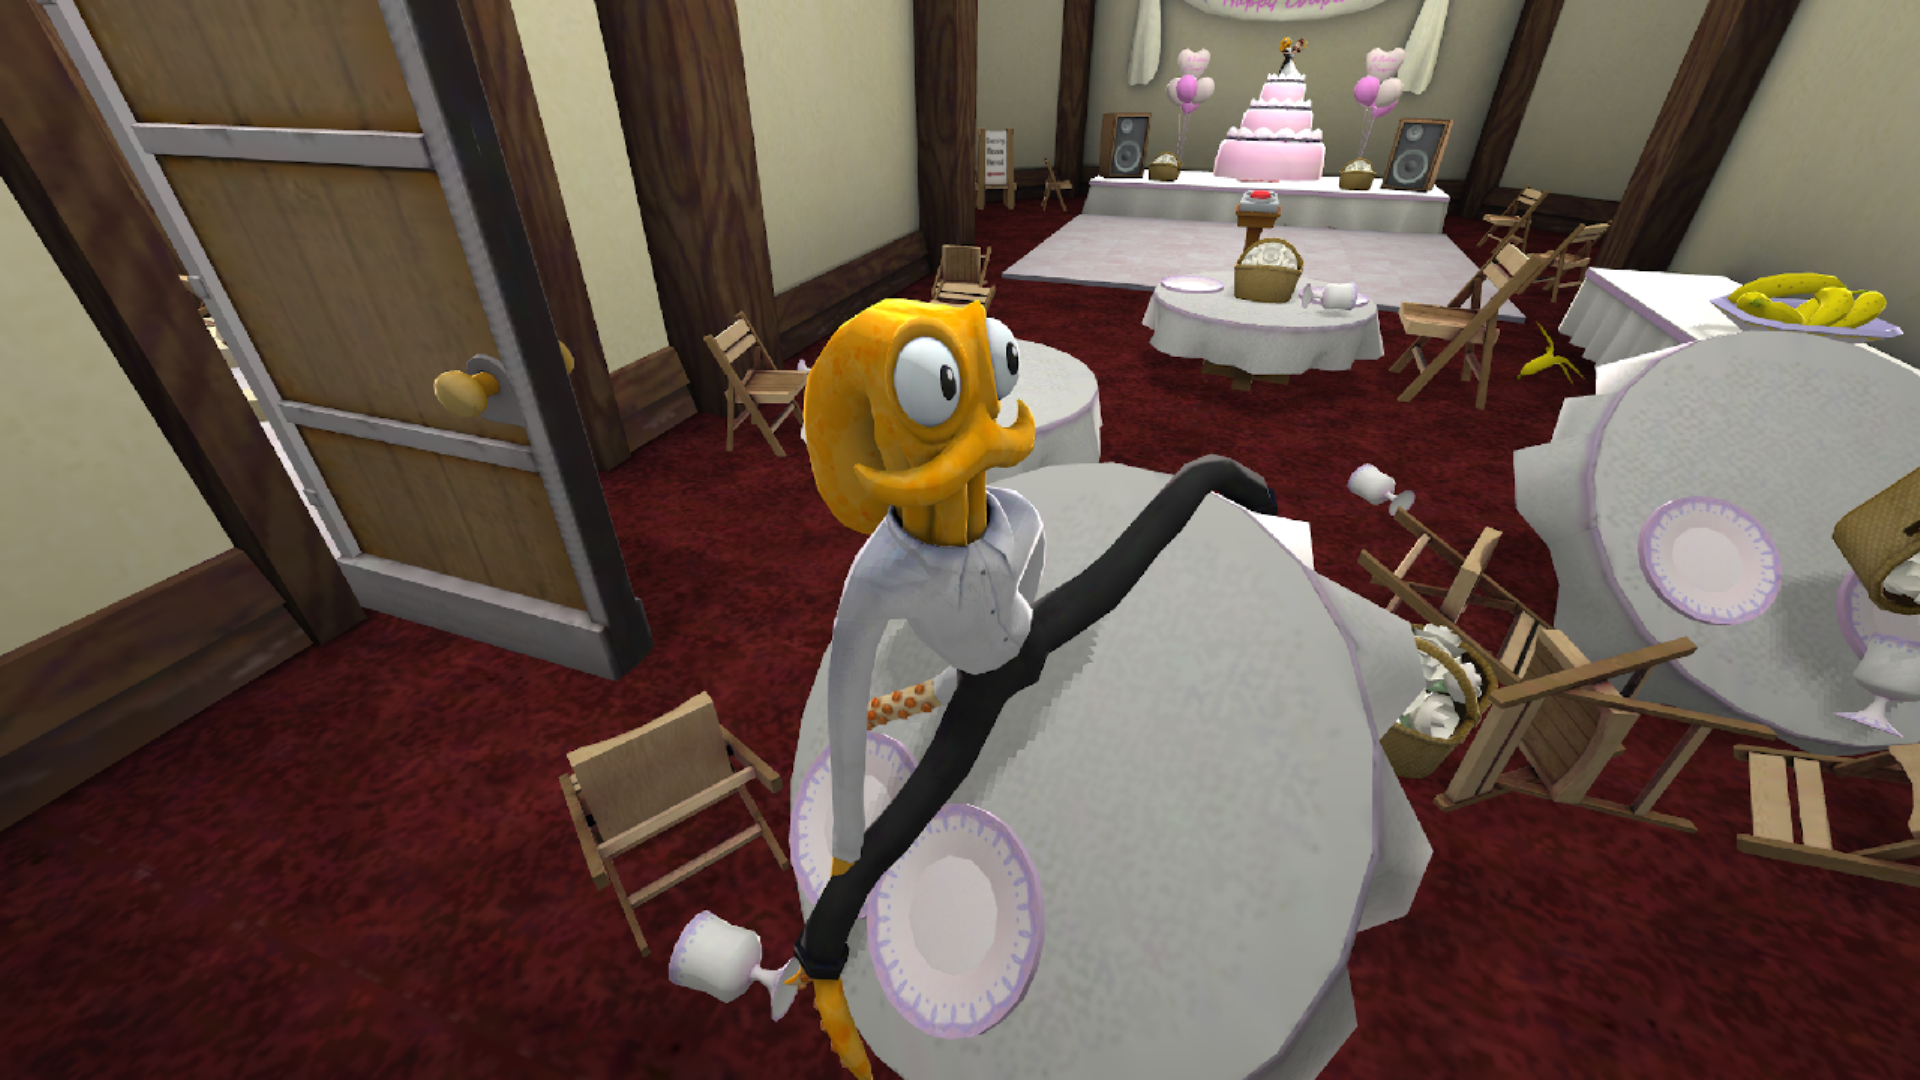 Octodad: Dadliest Catch screenshot 12